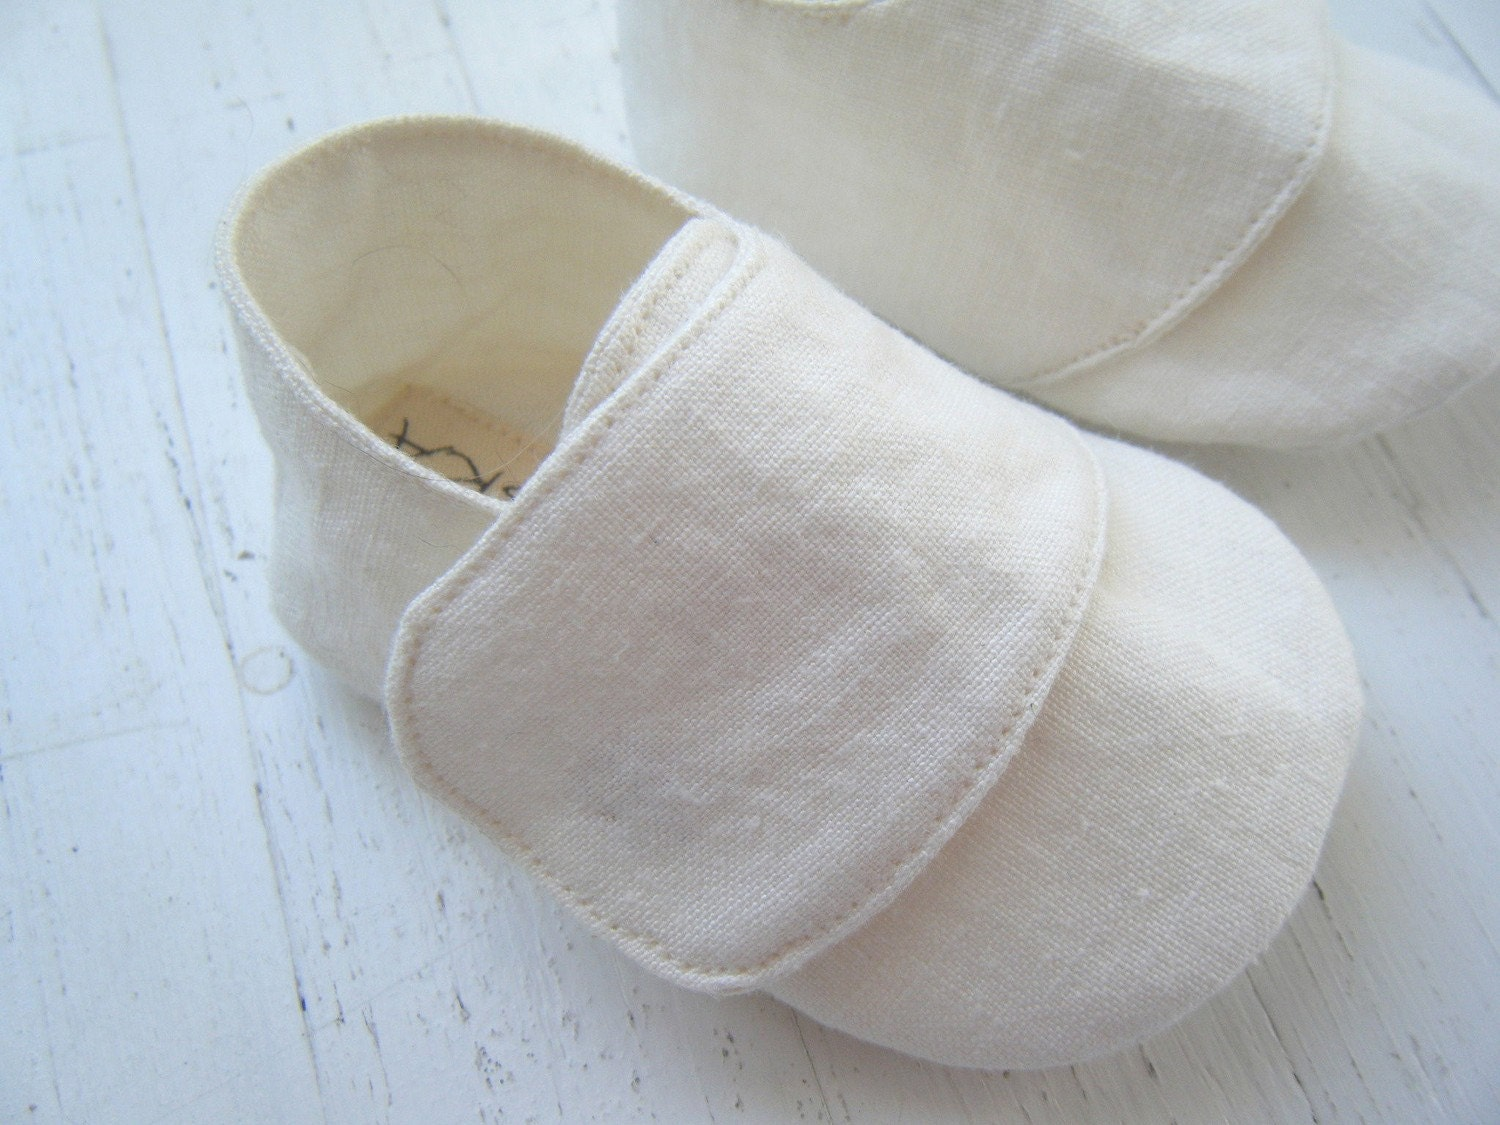 Welcome to hand-painted organic baby shoes & slippers from Kaya's Kloset! Thank you for looking into Kaya's Kloset Organic line of shoes. Cotton is the most pesticide-dependent crop in the world, accounting for 25% of all pesticide use.